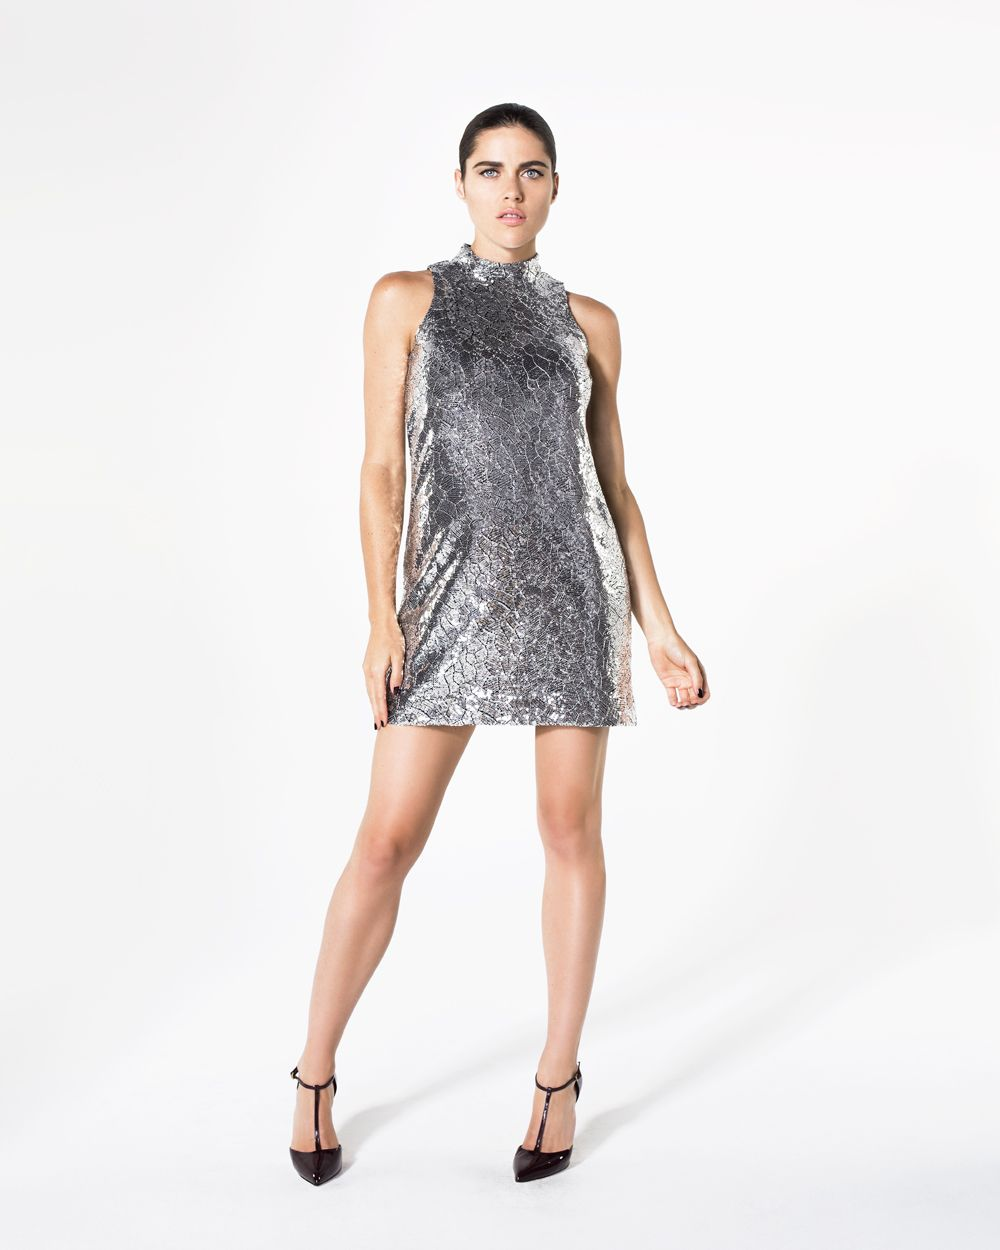 ELLE by RW&CO | Mirror effect sequined dress | Work | Pinterest